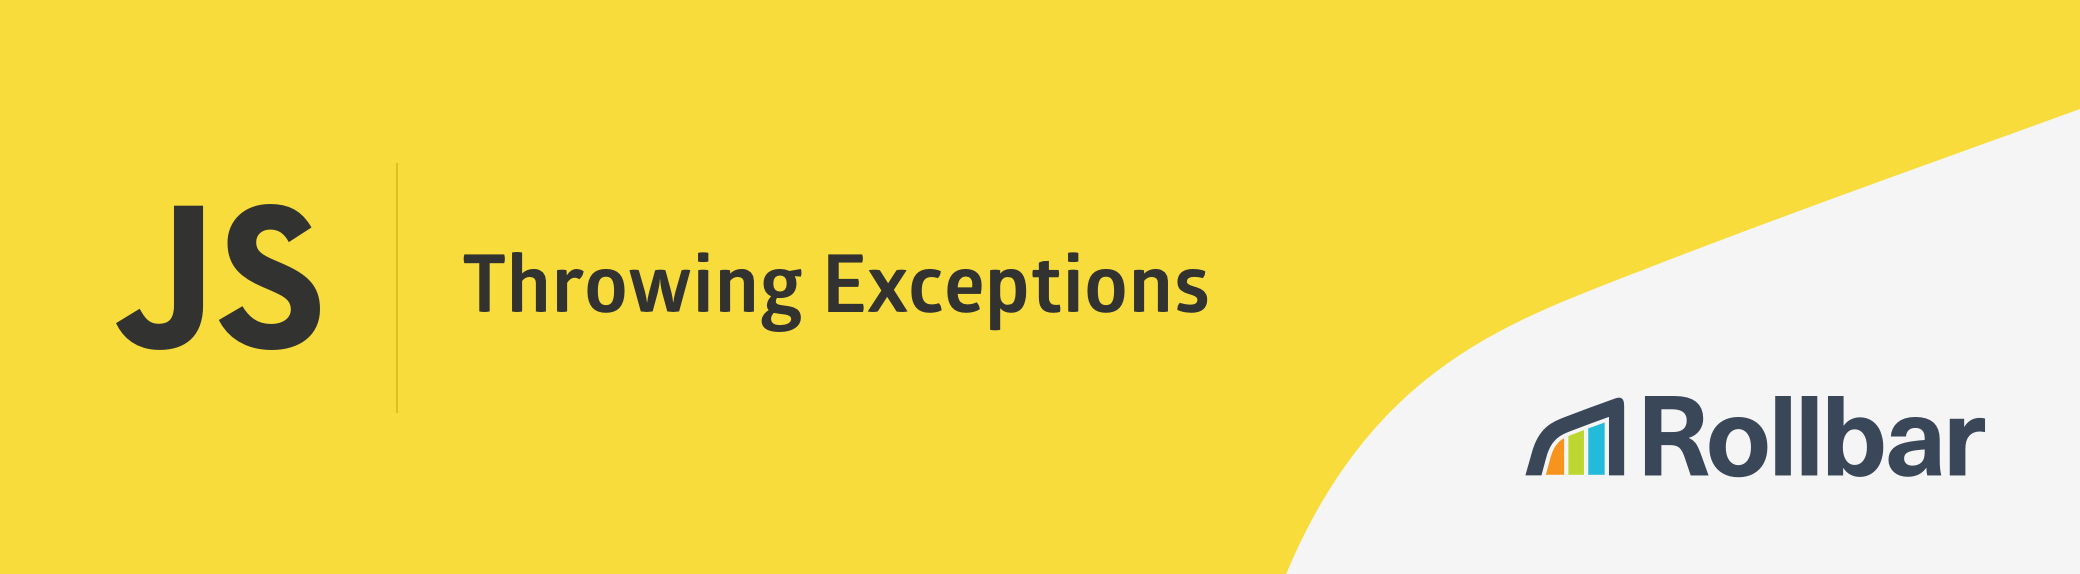 Throwing exceptions in JavaScript | Rollbar